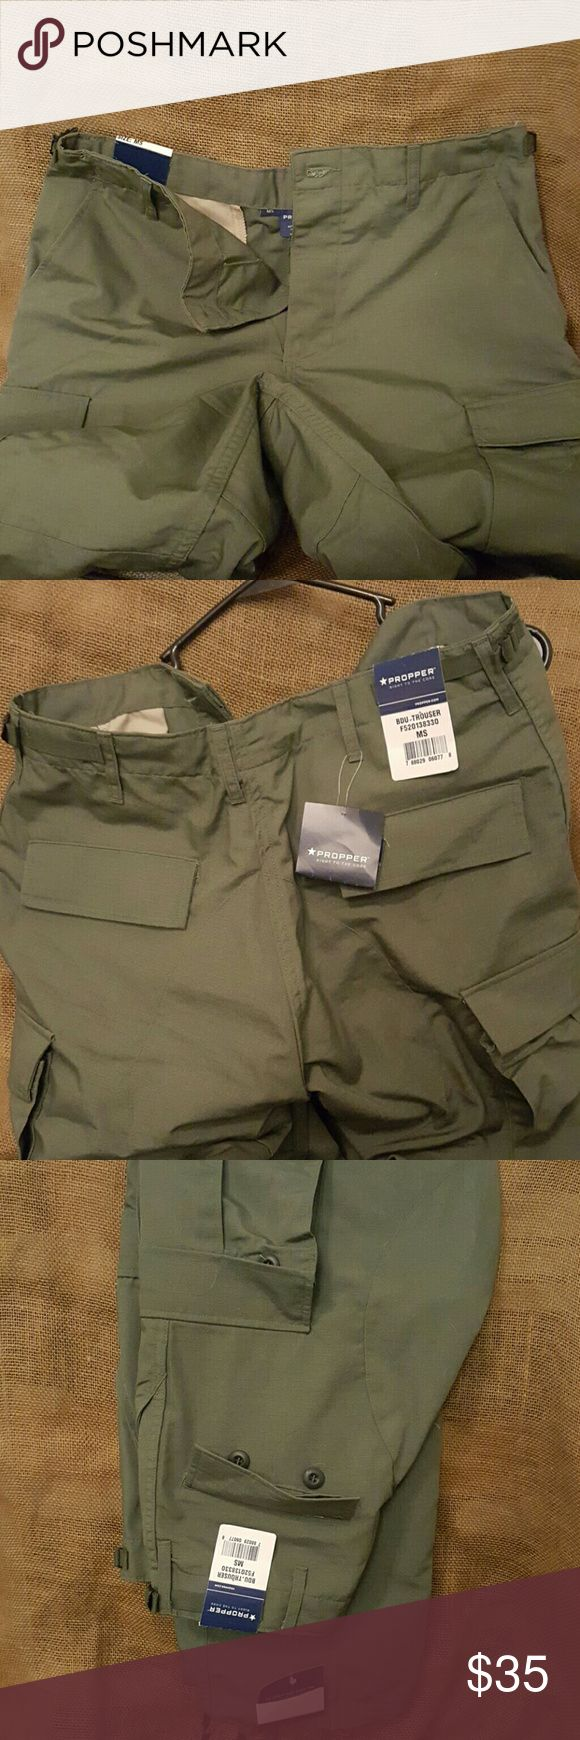 "Propper Tactical Green Ladies Womens Pants Medium Green tactical field pants. Many pockets. Size medium short. They are 18"" at the waist. 40"" long. Propper Pants"